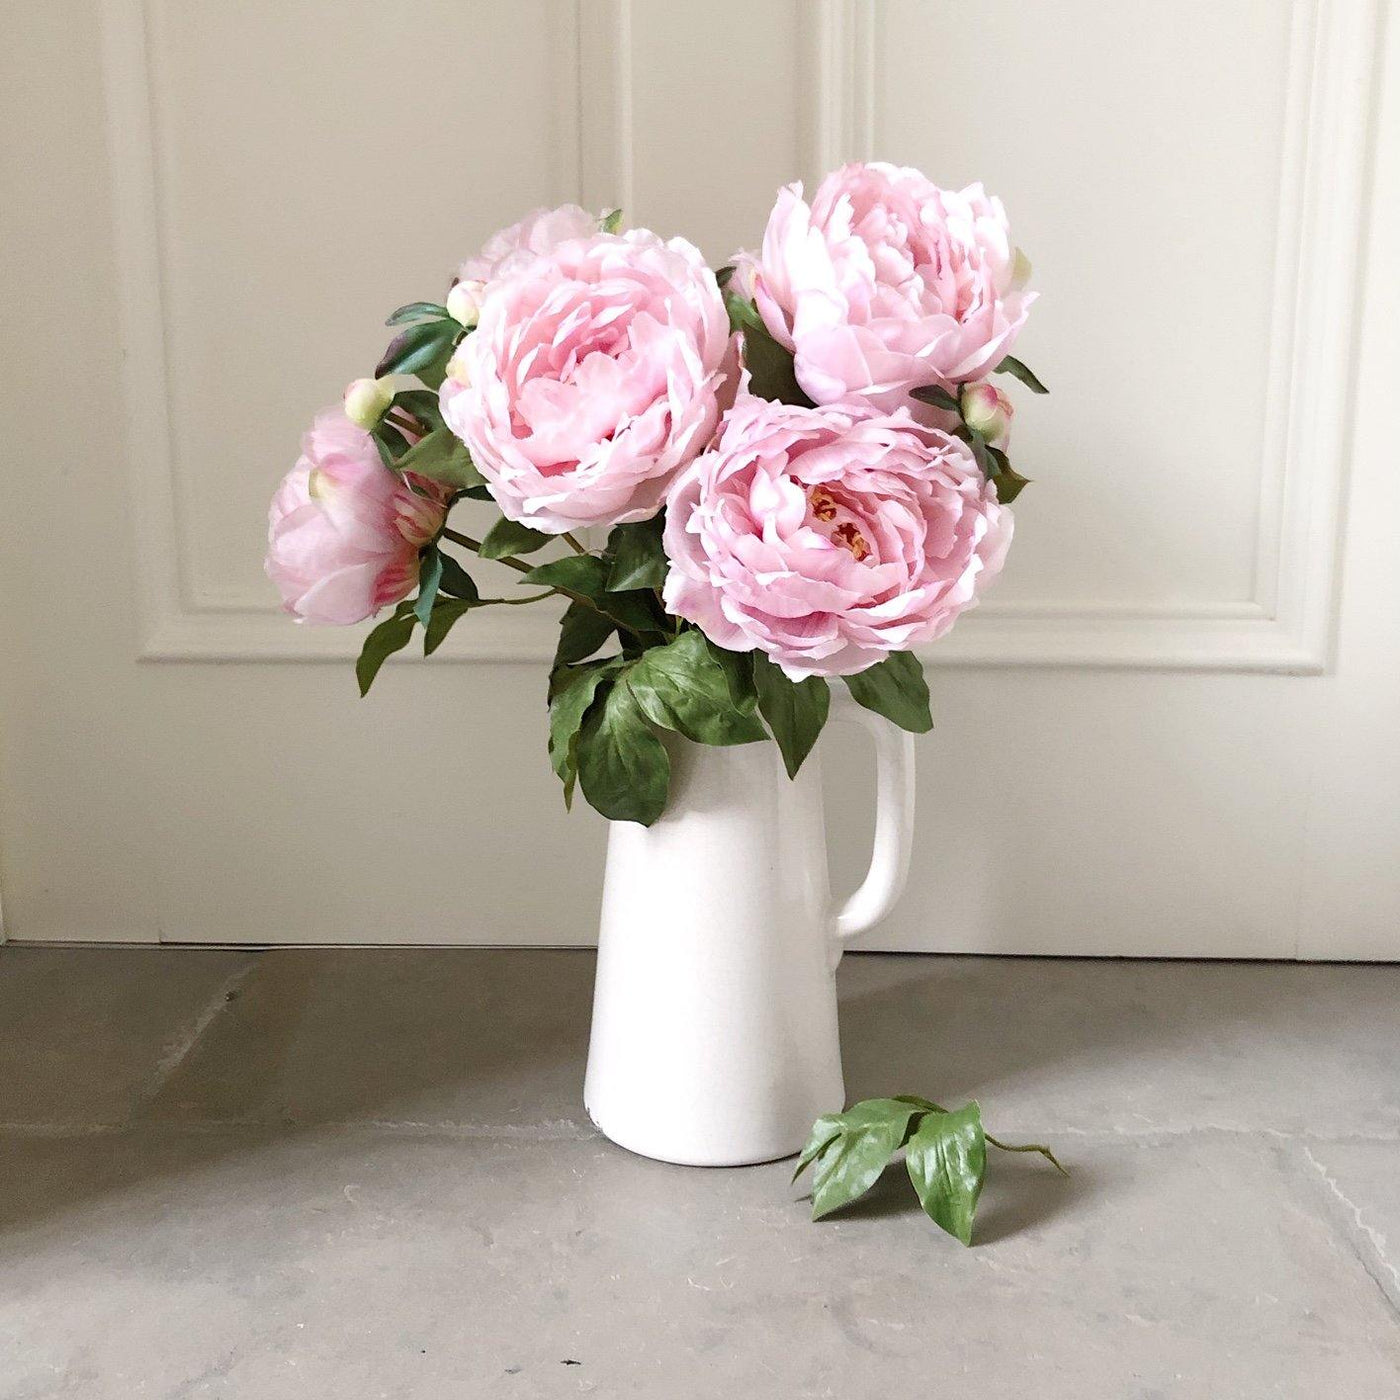 The Classic Pale Pink Peony in a Ceramic Jug Vase - The Irish Country Home